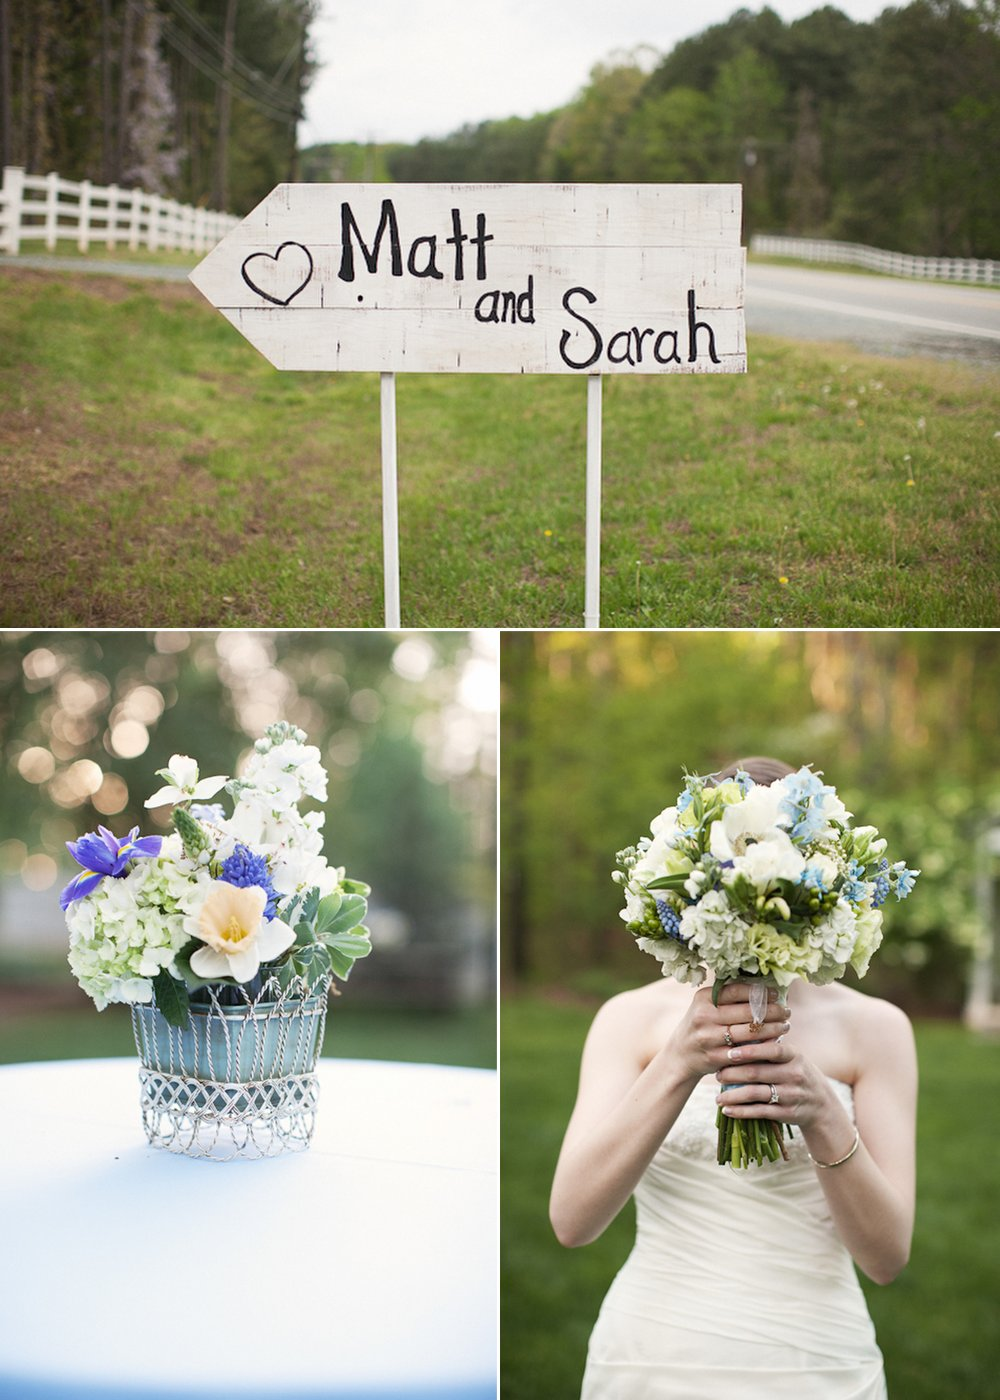 Rustic-real-wedding-romantic-bridal-ouquet-custom-wedding-ceremony-sign.full